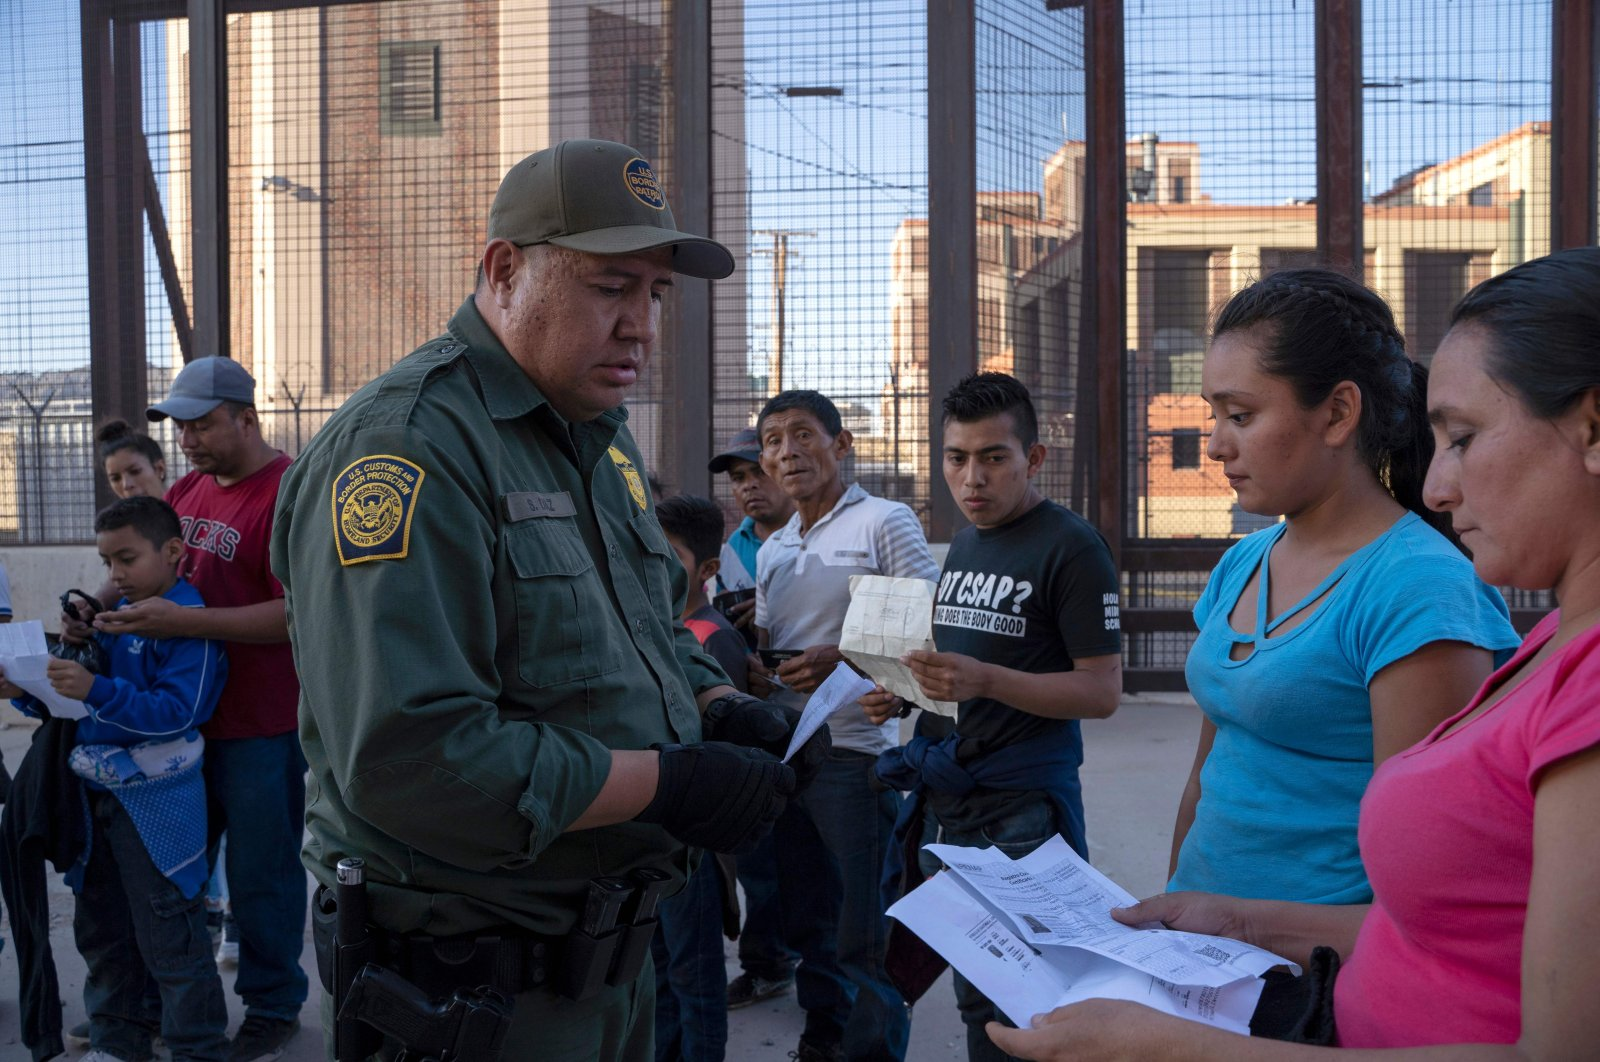 In this file photo taken on May 16, 2019, U.S. Customs and Border Protection agent checks documents of a small group of migrants, who crossed the Rio Grande from Juarez, Mexico, in El Paso, Texas. (AFP)